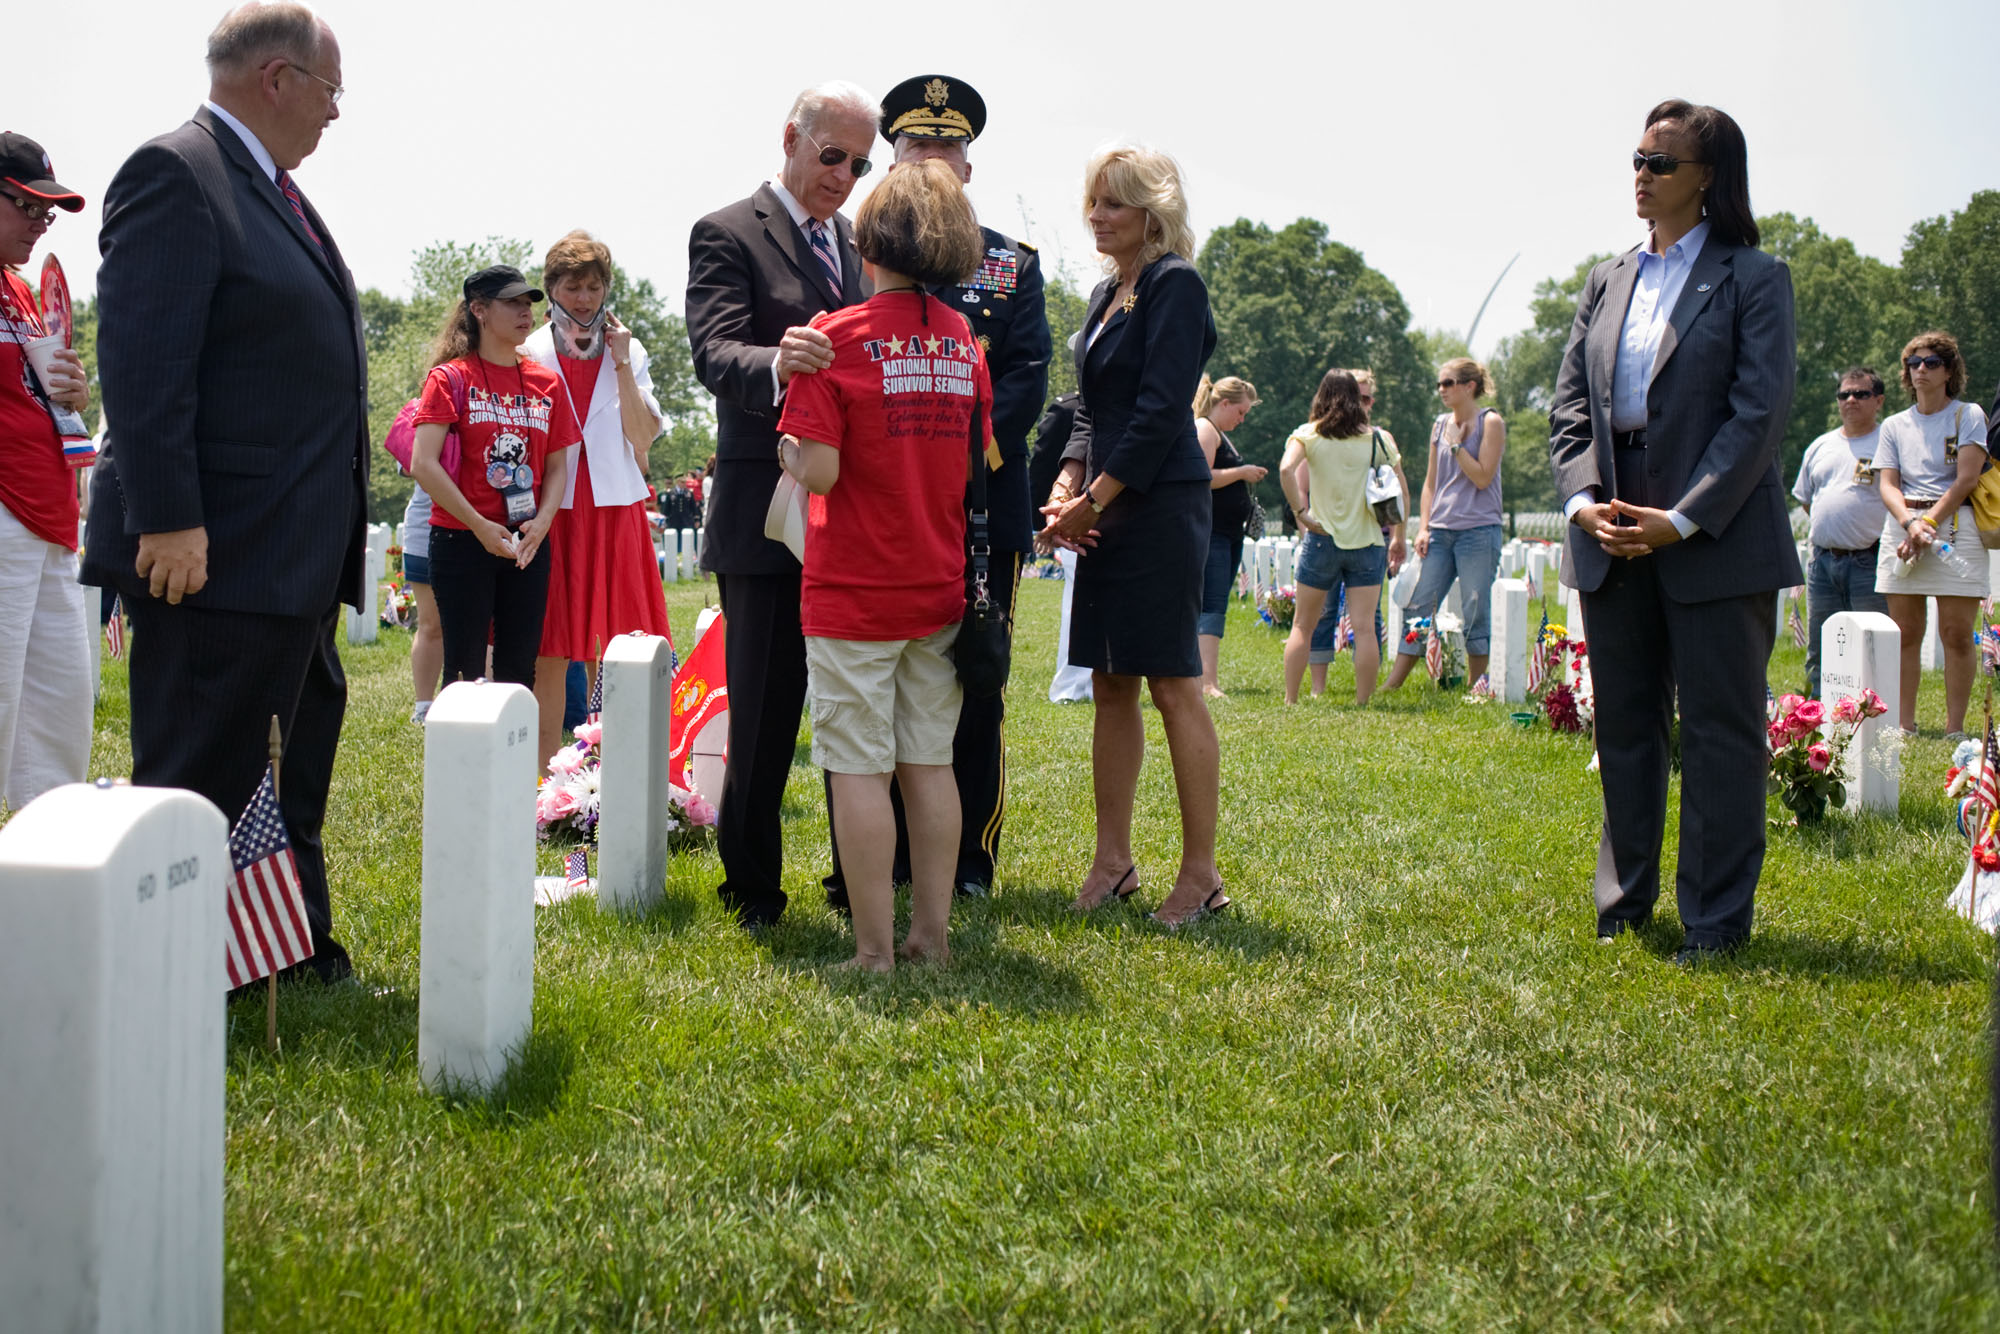 Vice President Biden and Dr. Jill Biden Visit with Families in Arlington